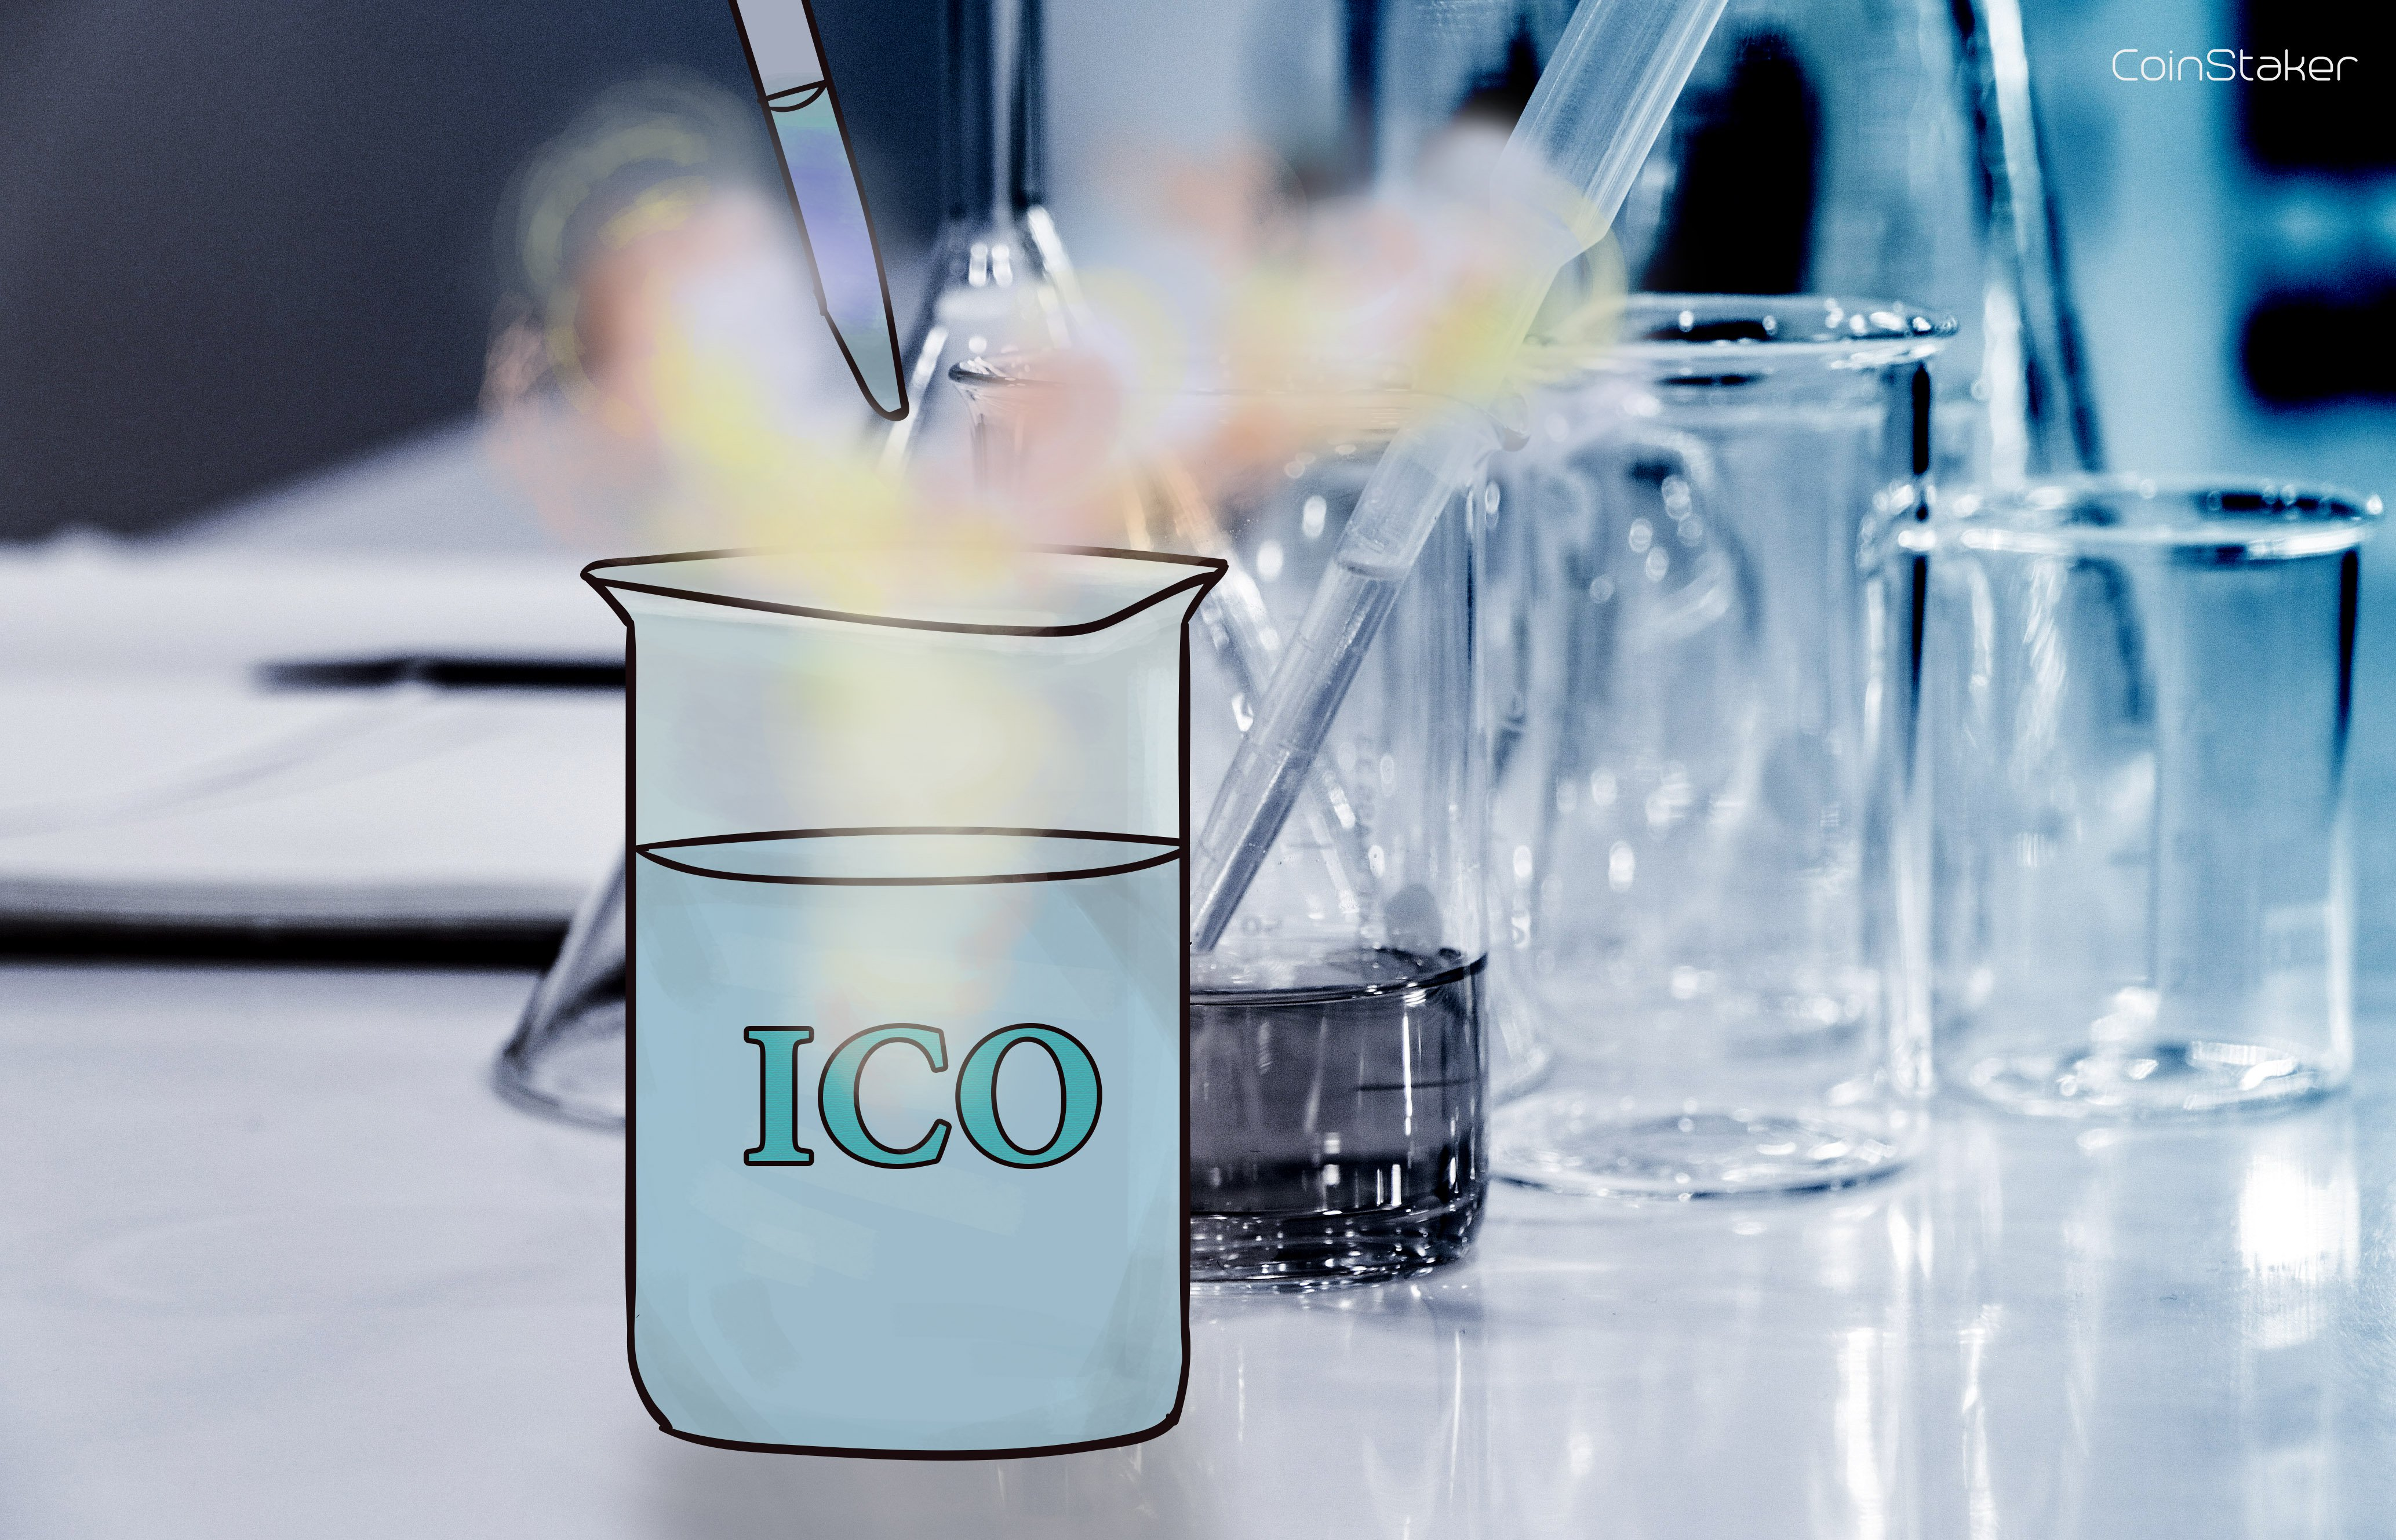 More than 50% of all ICOs fail to raise money |